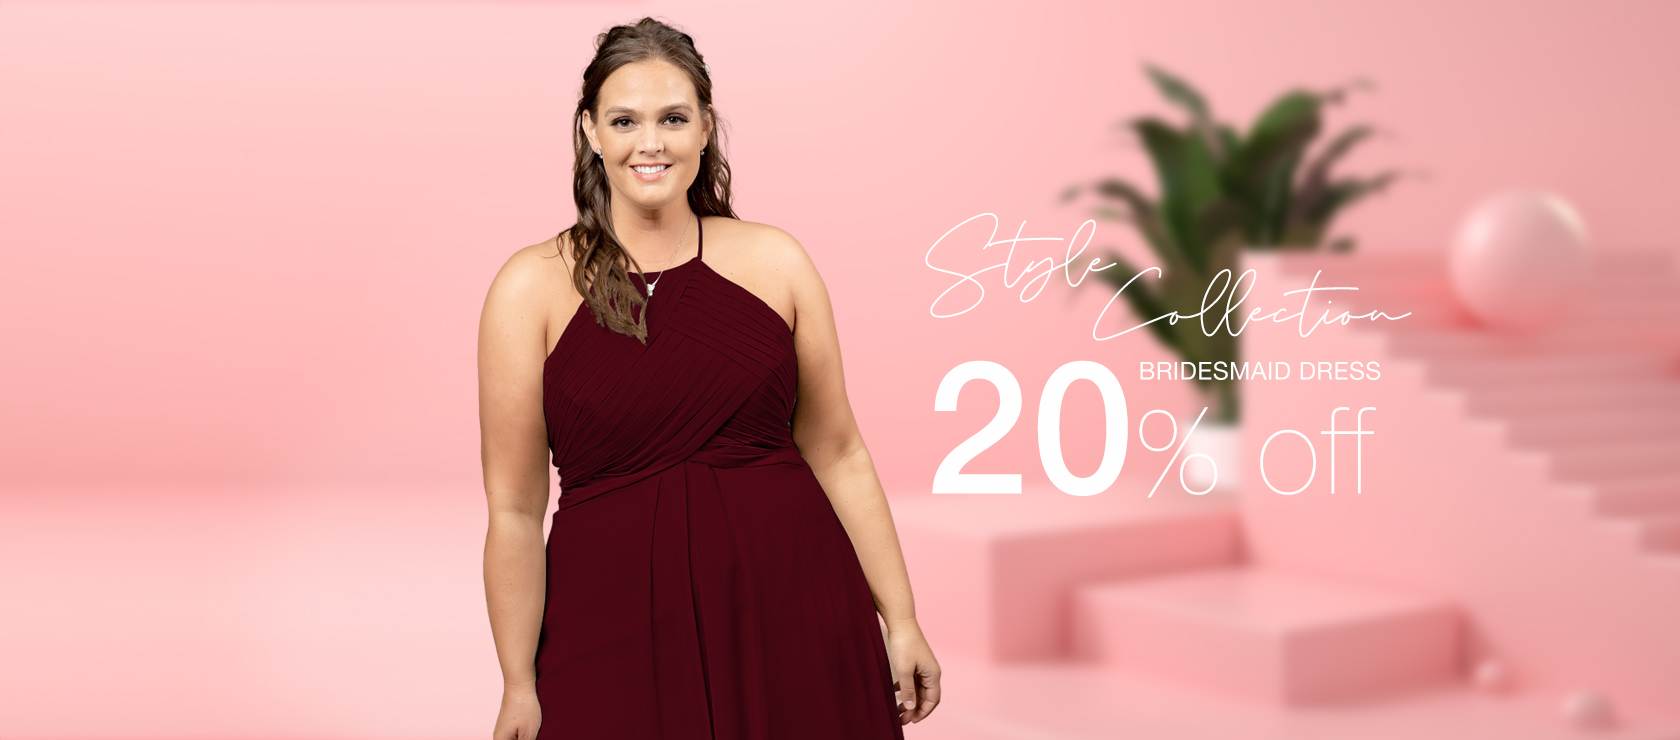 BRIDESMAIDS 20% OFF